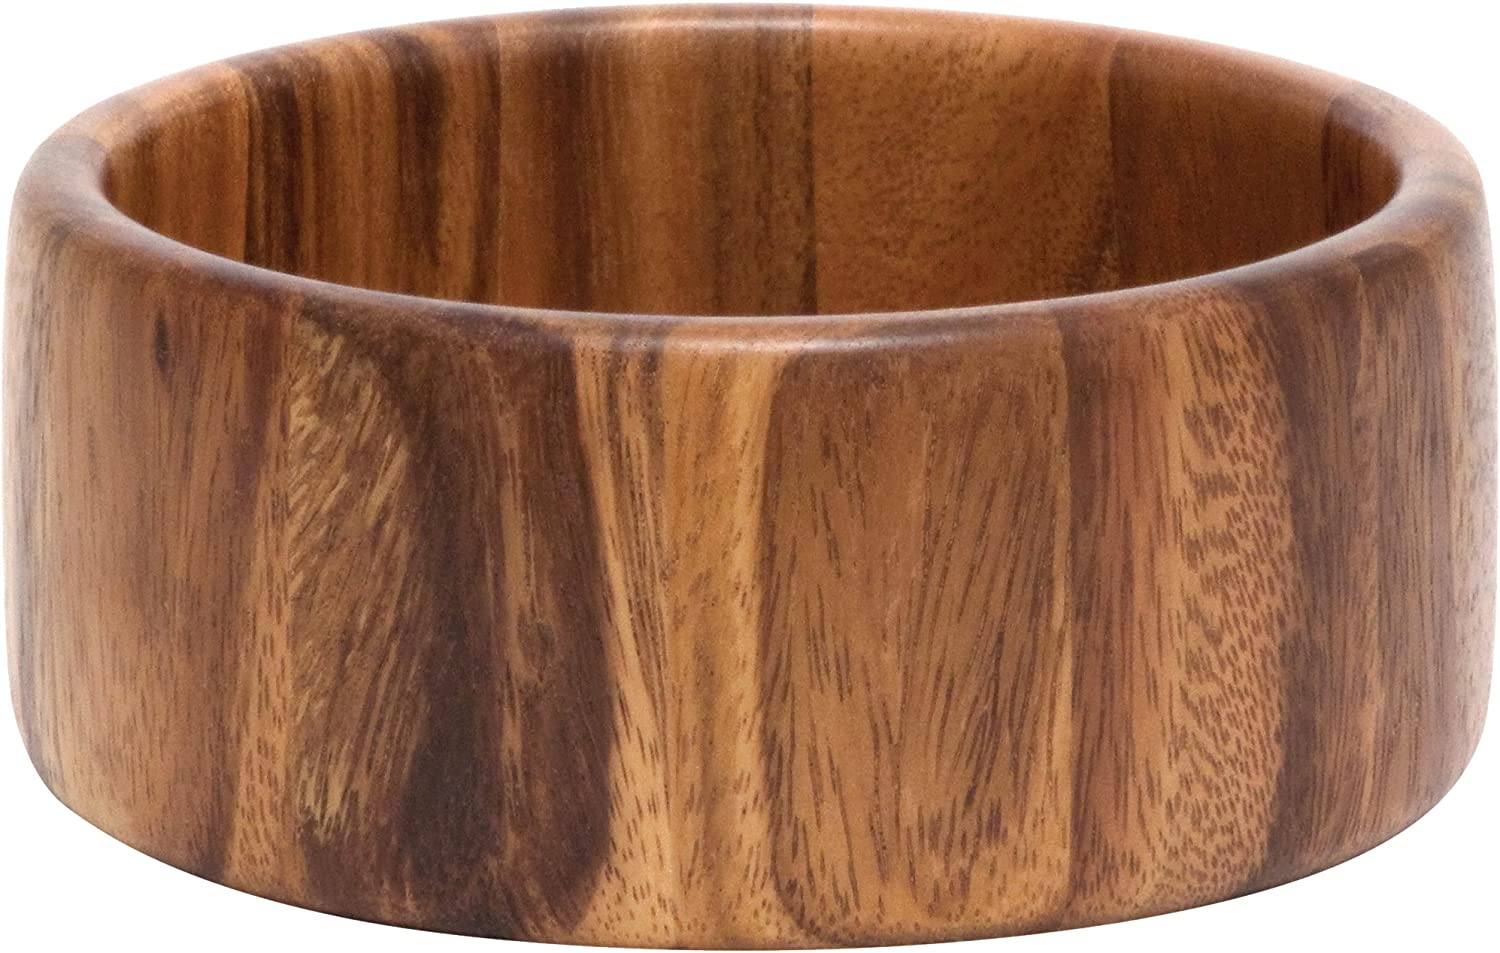 "Lipper International Acacia Straight-Side Serving Bowl for Fruits or Salads, Small, 6"" Diameter x 2.5"" Height, Single Bowl"